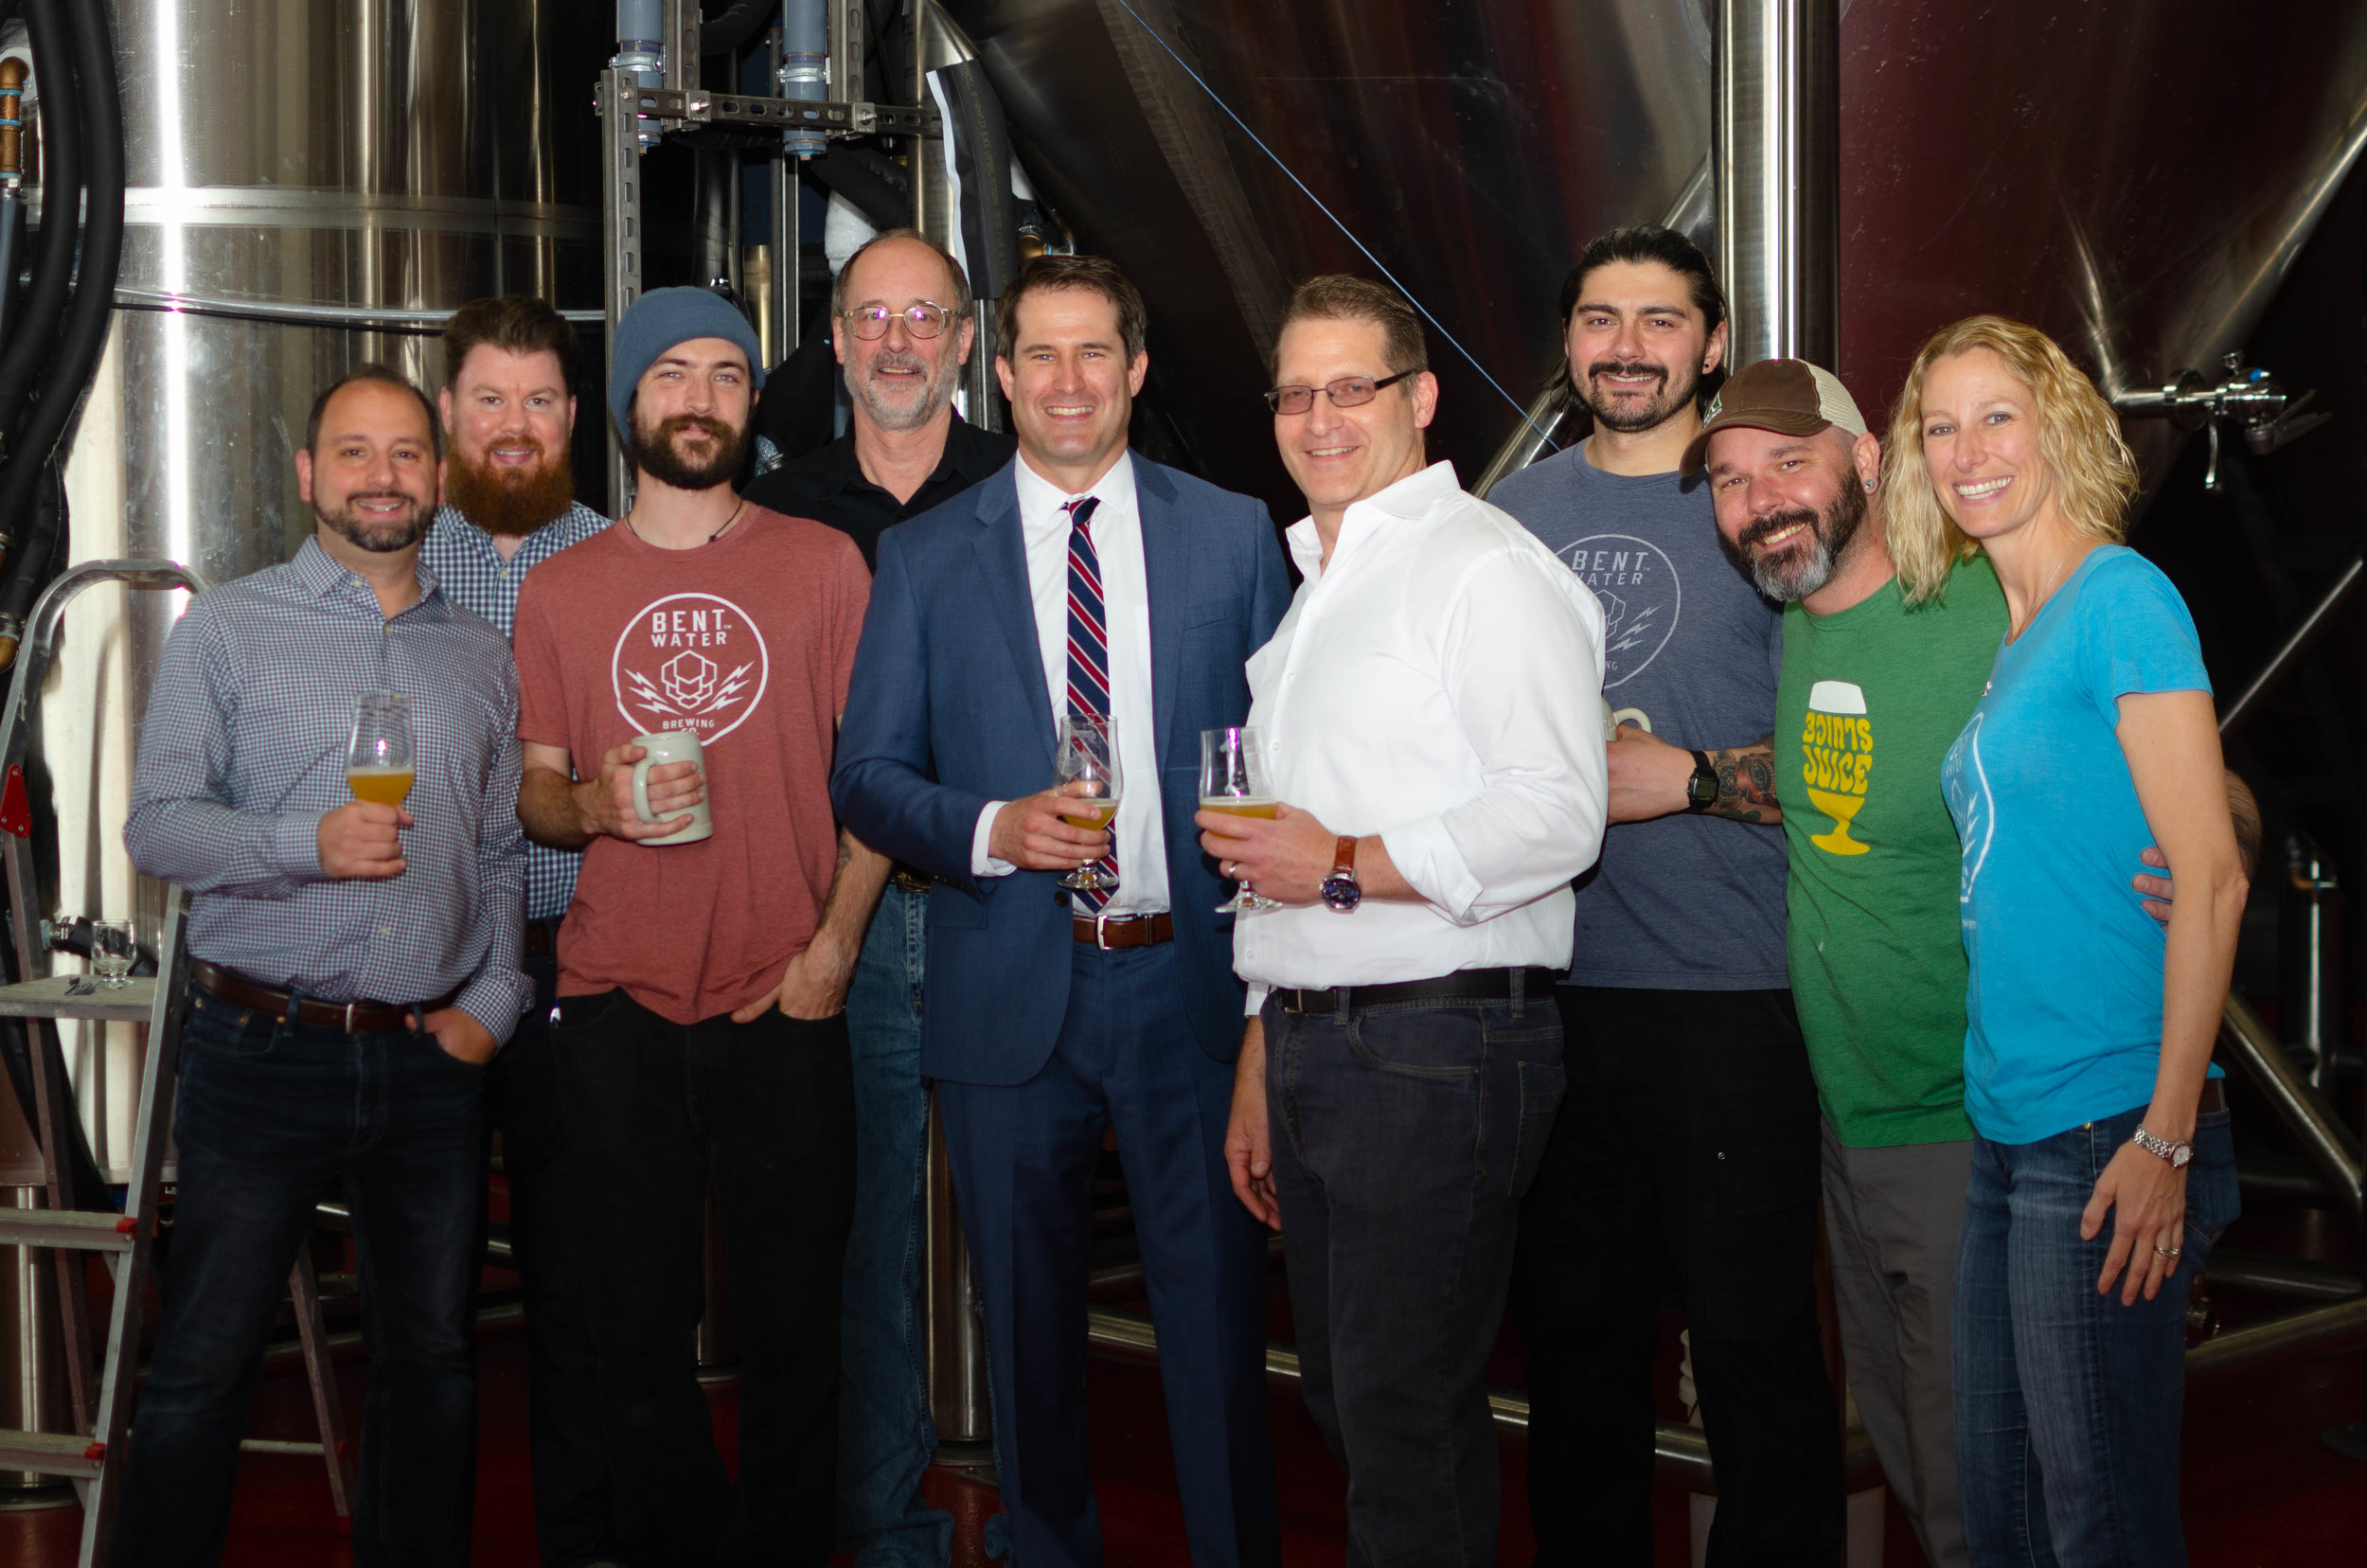 Congressman Seth Moulton Visit - The Bent Water Brewing crew welcomed Congressman Moulton back to the brewery to tour the newly expanded production facility. May 24, 2019